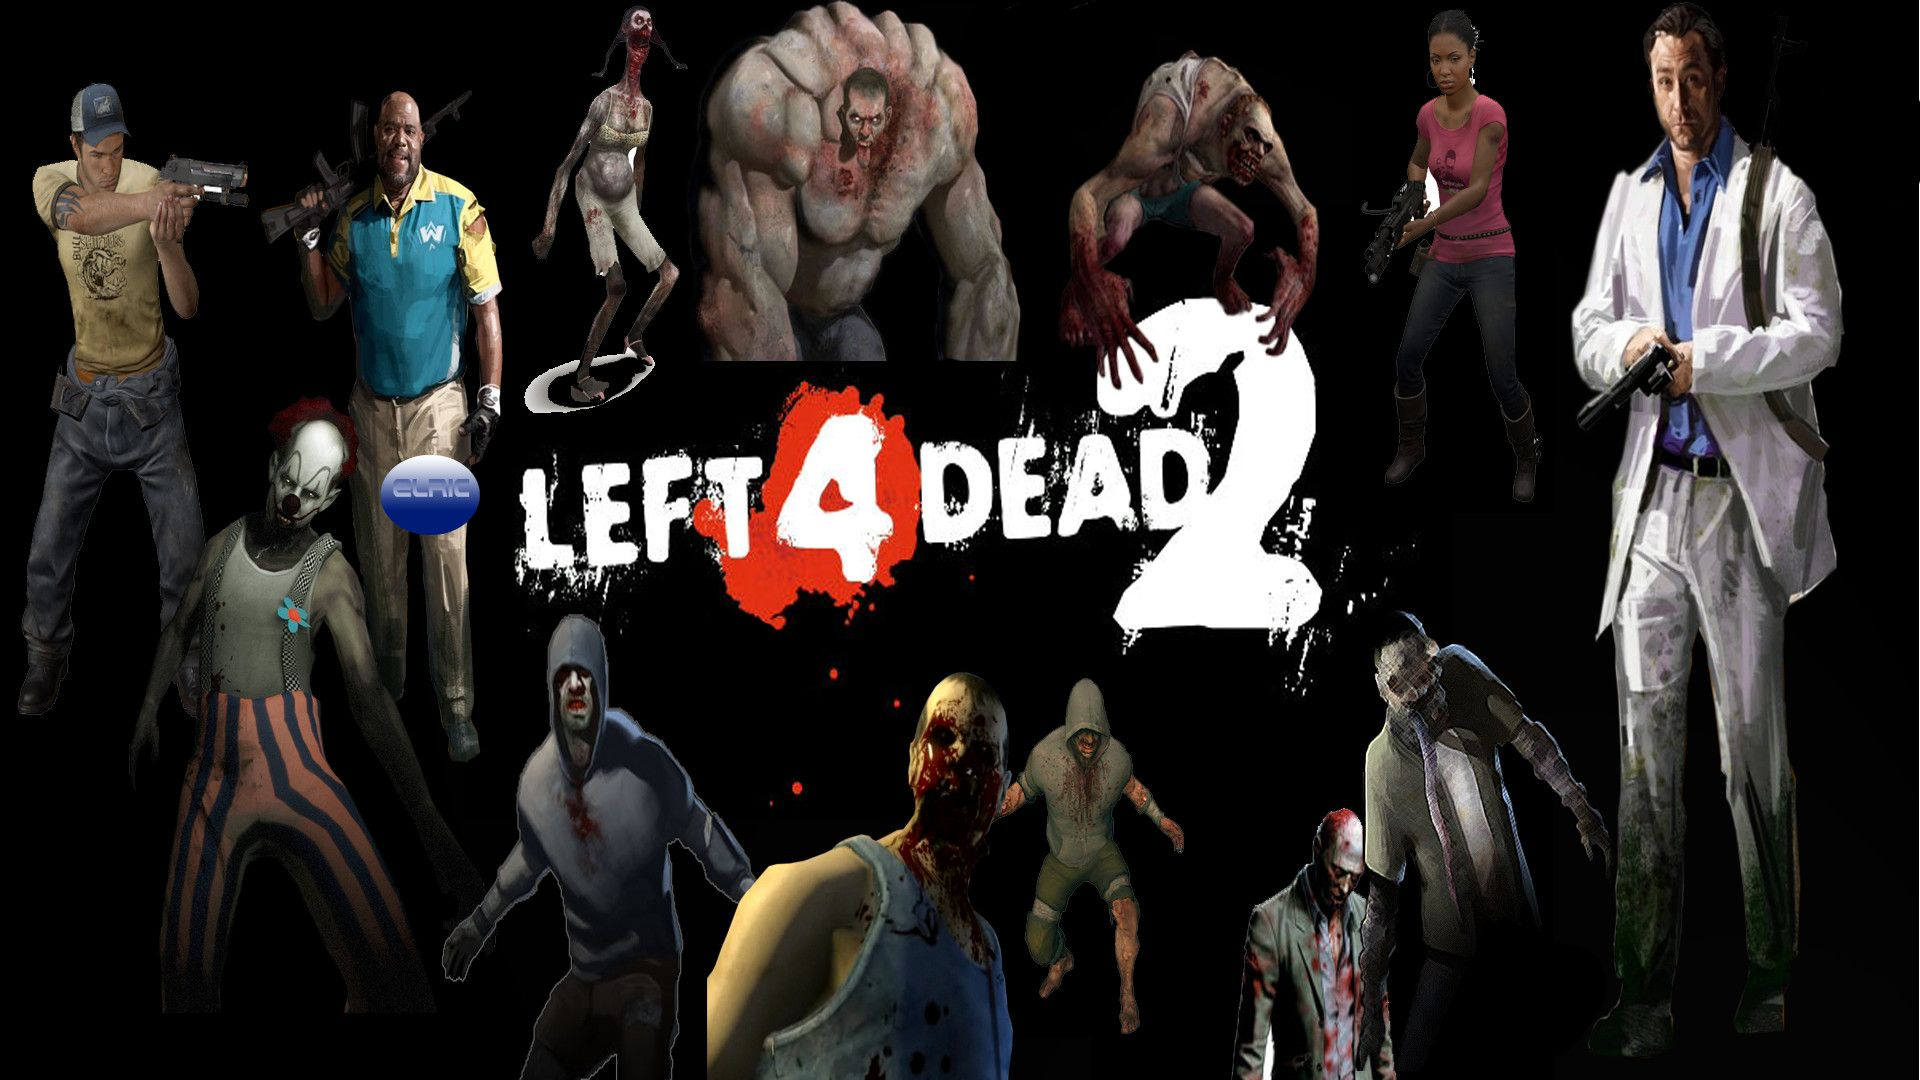 Res 1920x1080 Left 4 Dead Wallpaper By Awesomeheadhunter Left 4 Dead Wallpaper By Awesomeheadhunter Left 4 Dead Wallpaper View Wallpaper